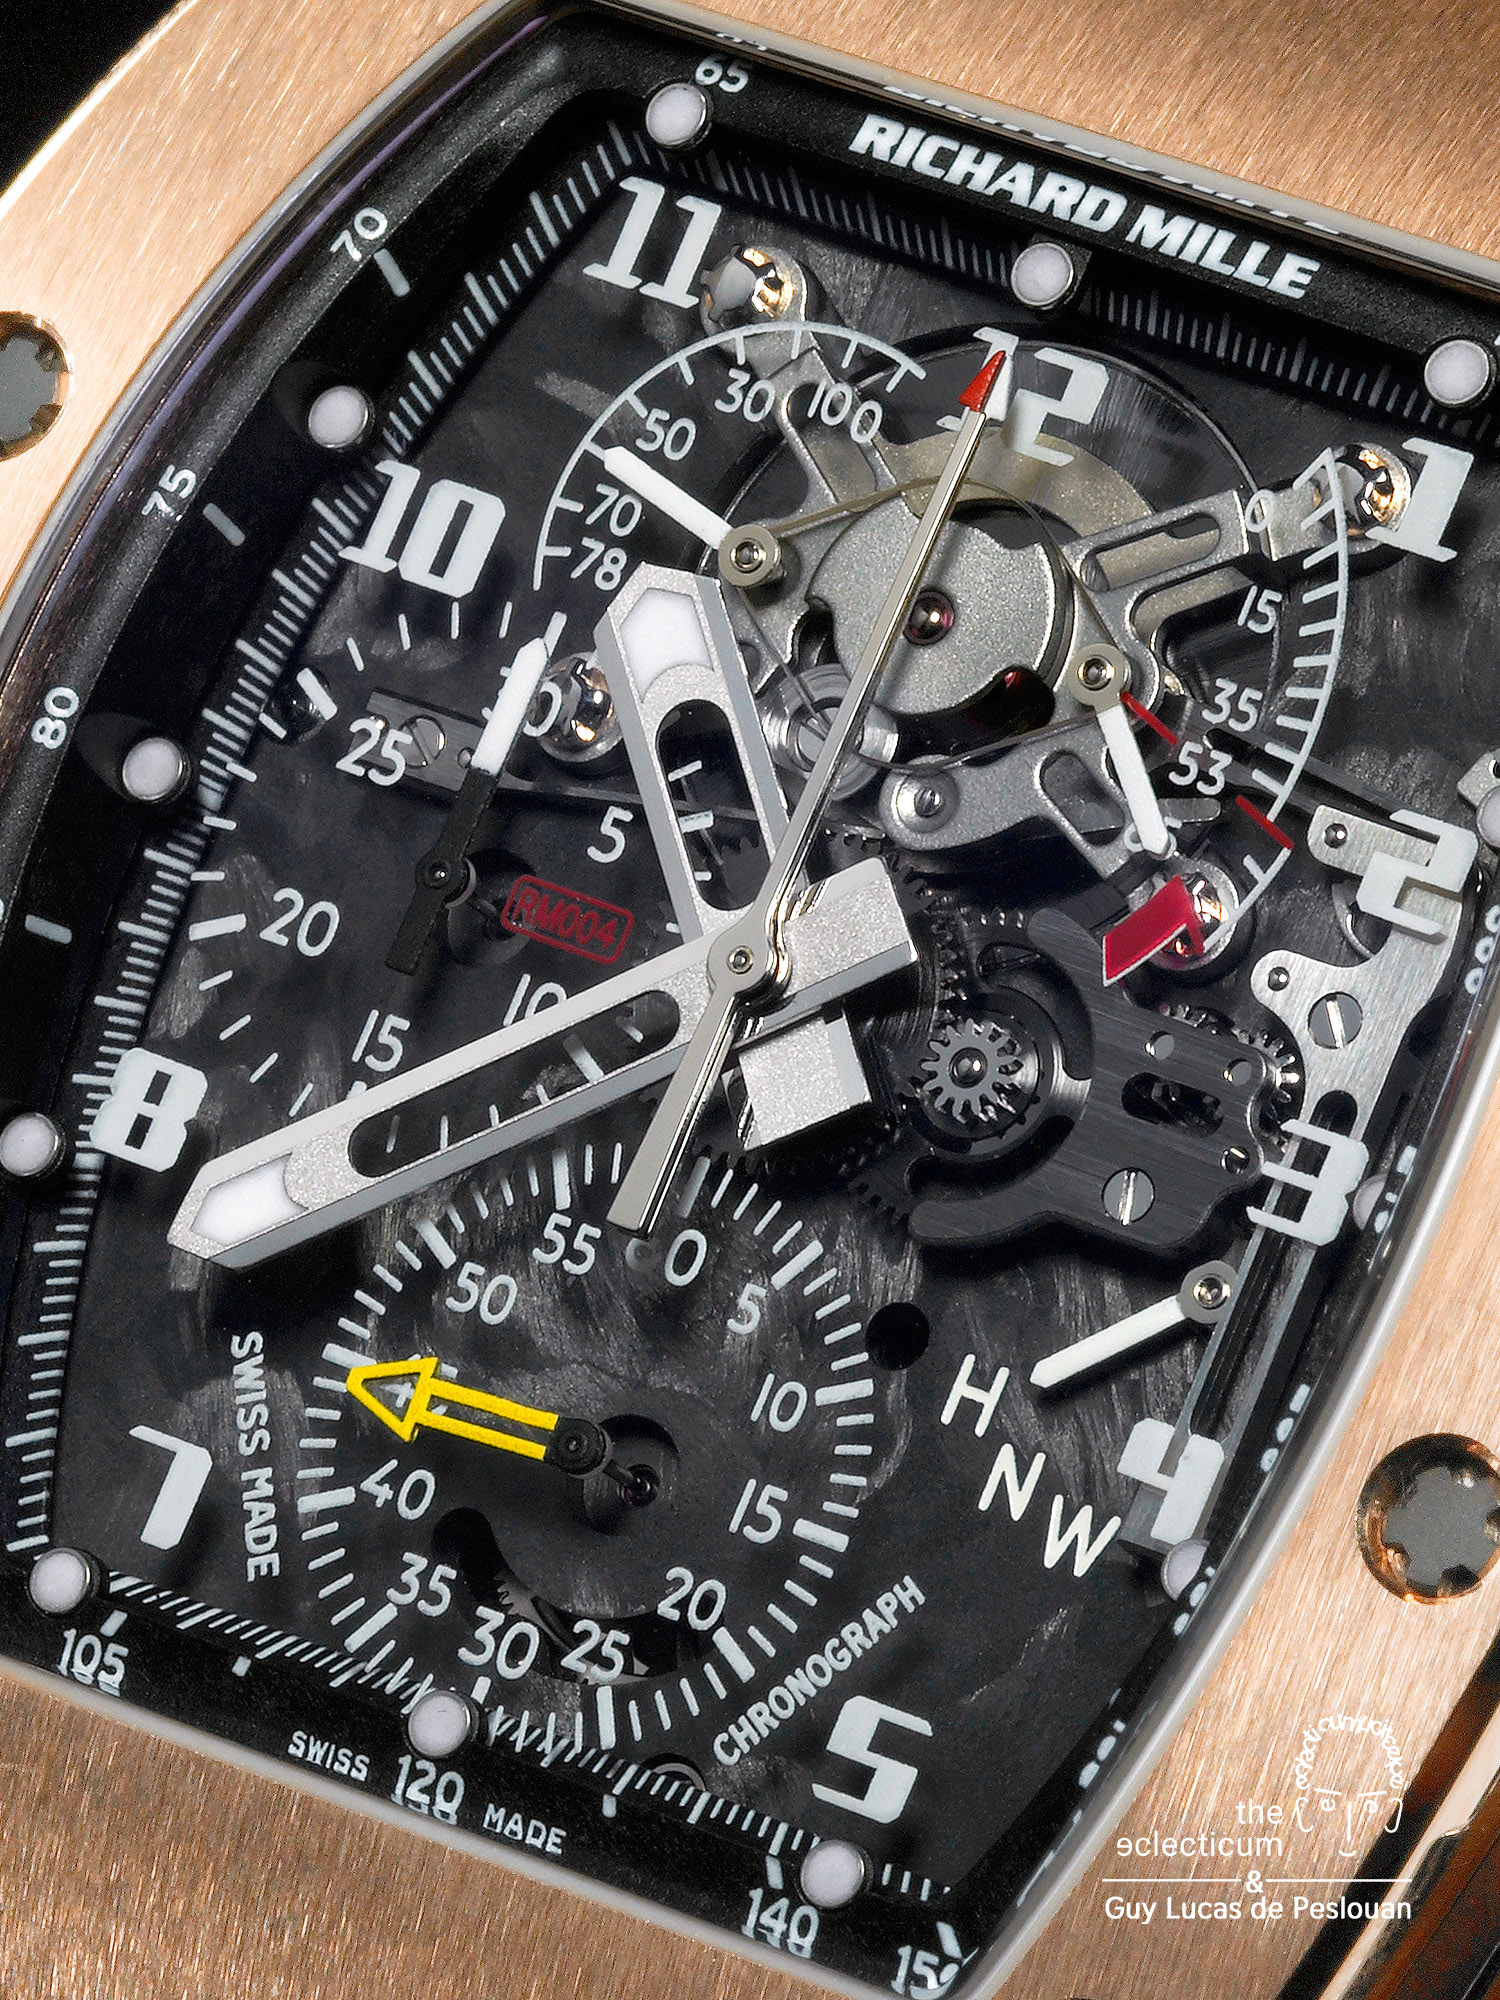 Richard Mille RM 004 Split Seconds Chronograph